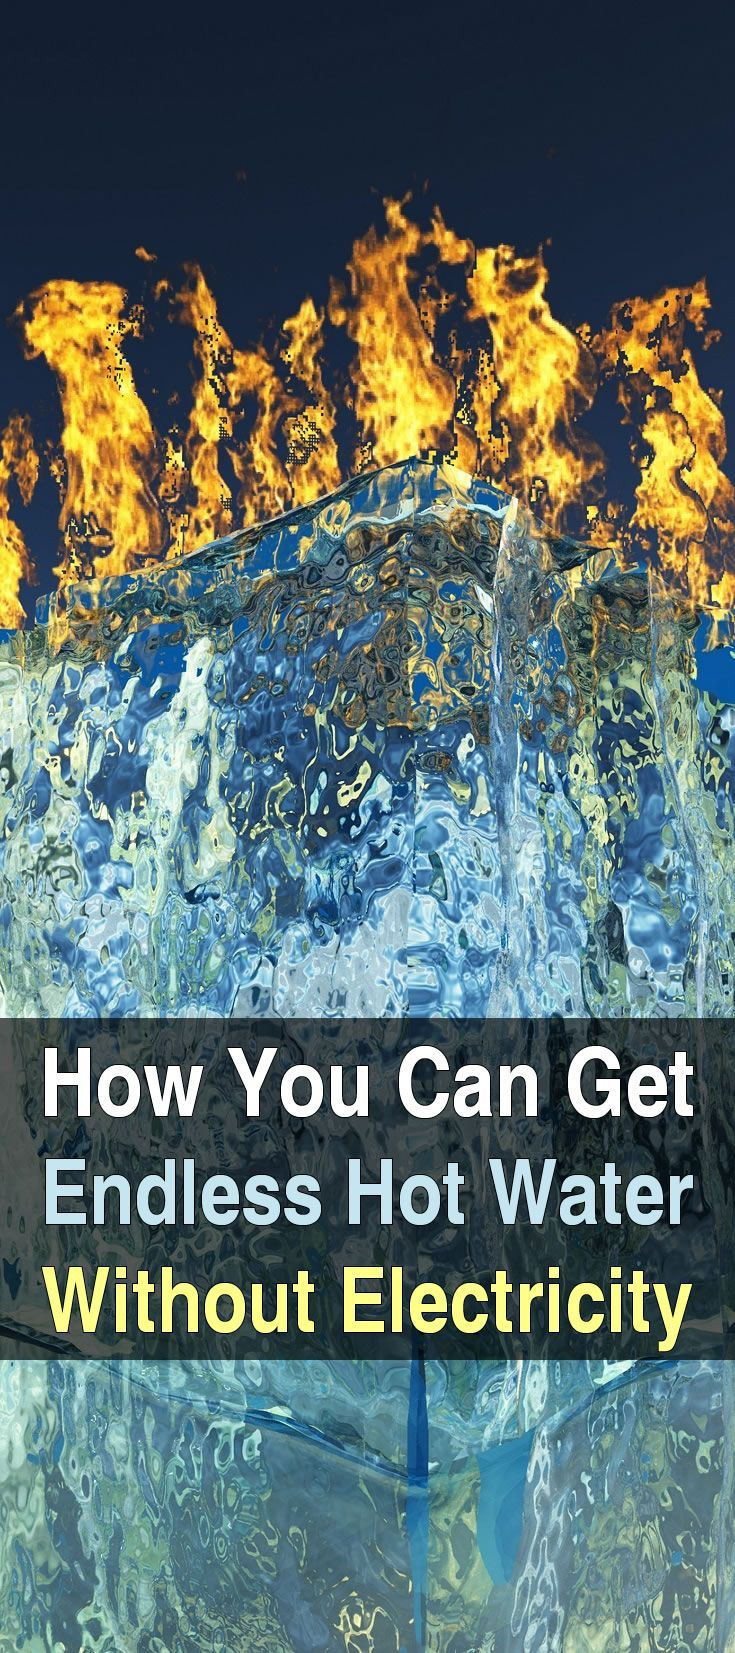 Endless Hot Water Without Electricity. Engineer775 has an ingenious setup where he can easily heat up water without using any electricity. Watch the video to see what I mean. #Urbnsurvivalsite #Hotwaterwithoutelectricity #Survival